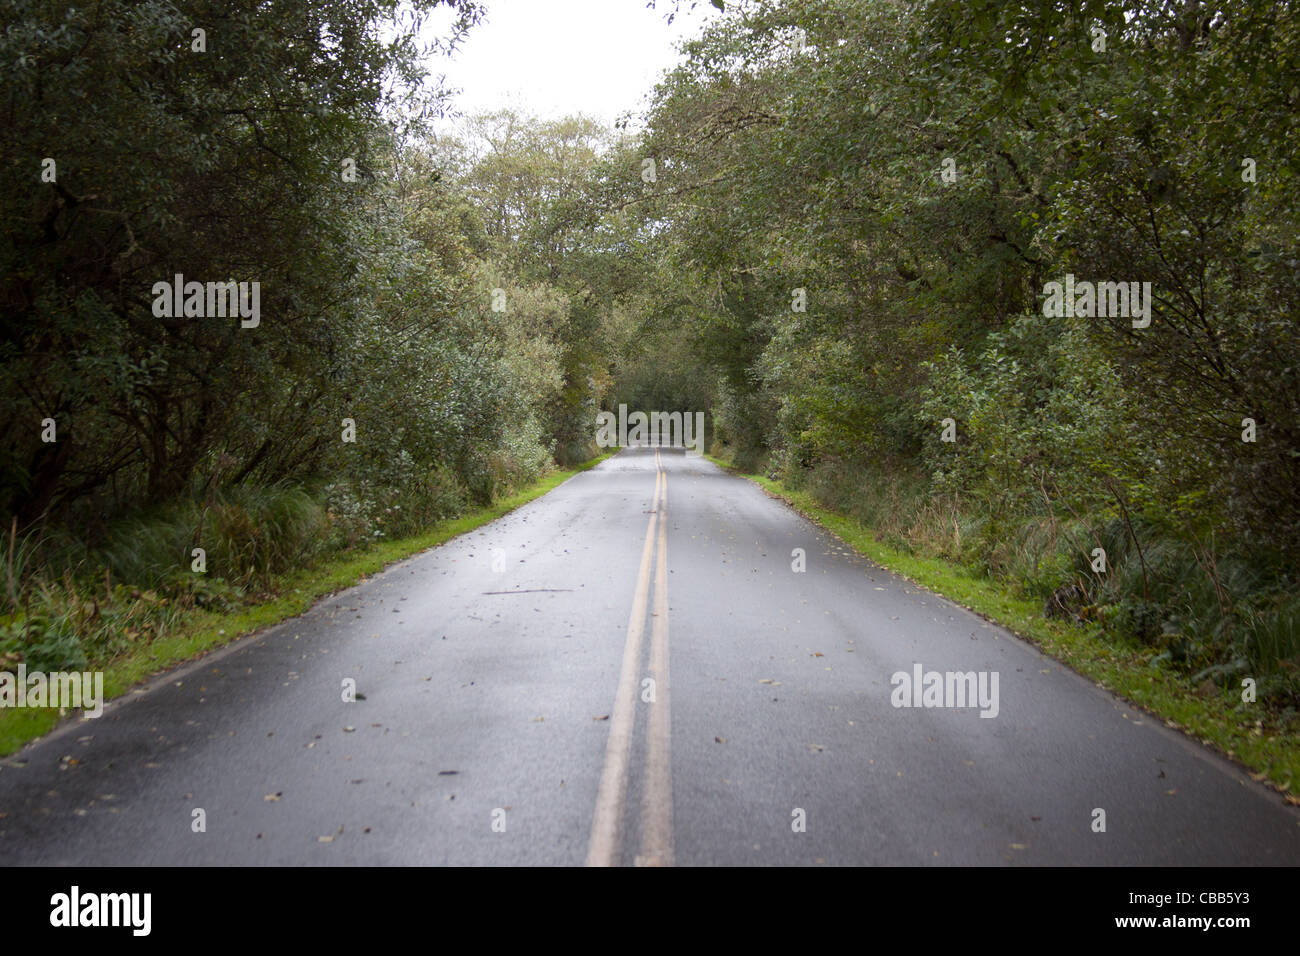 Road stretching far ahead. - Stock Image